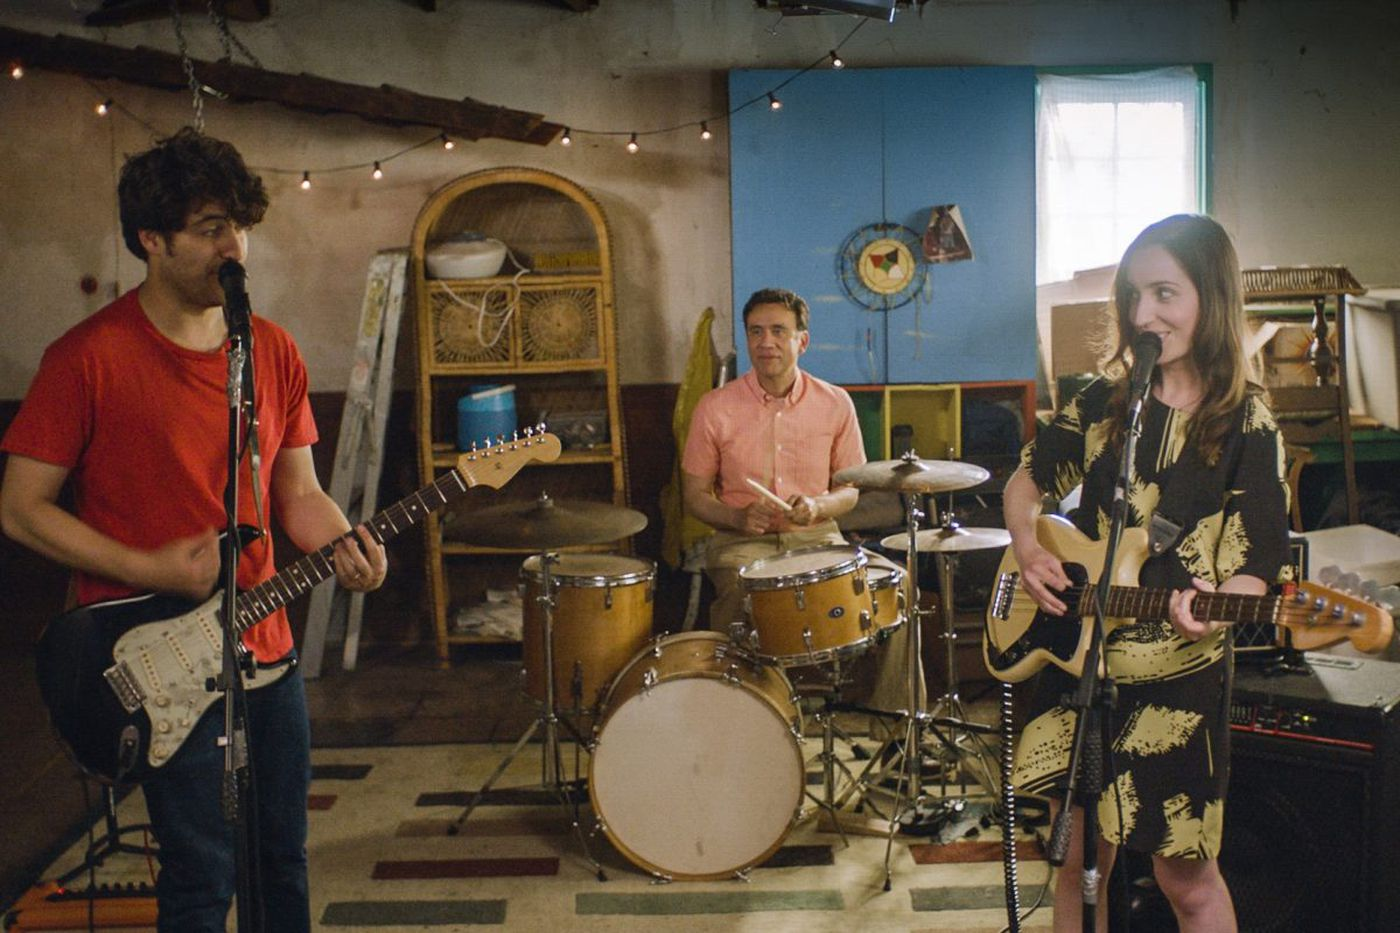 Sisterhood act: 'Band Aid' is the first movie with an all-female crew. It's also funny.